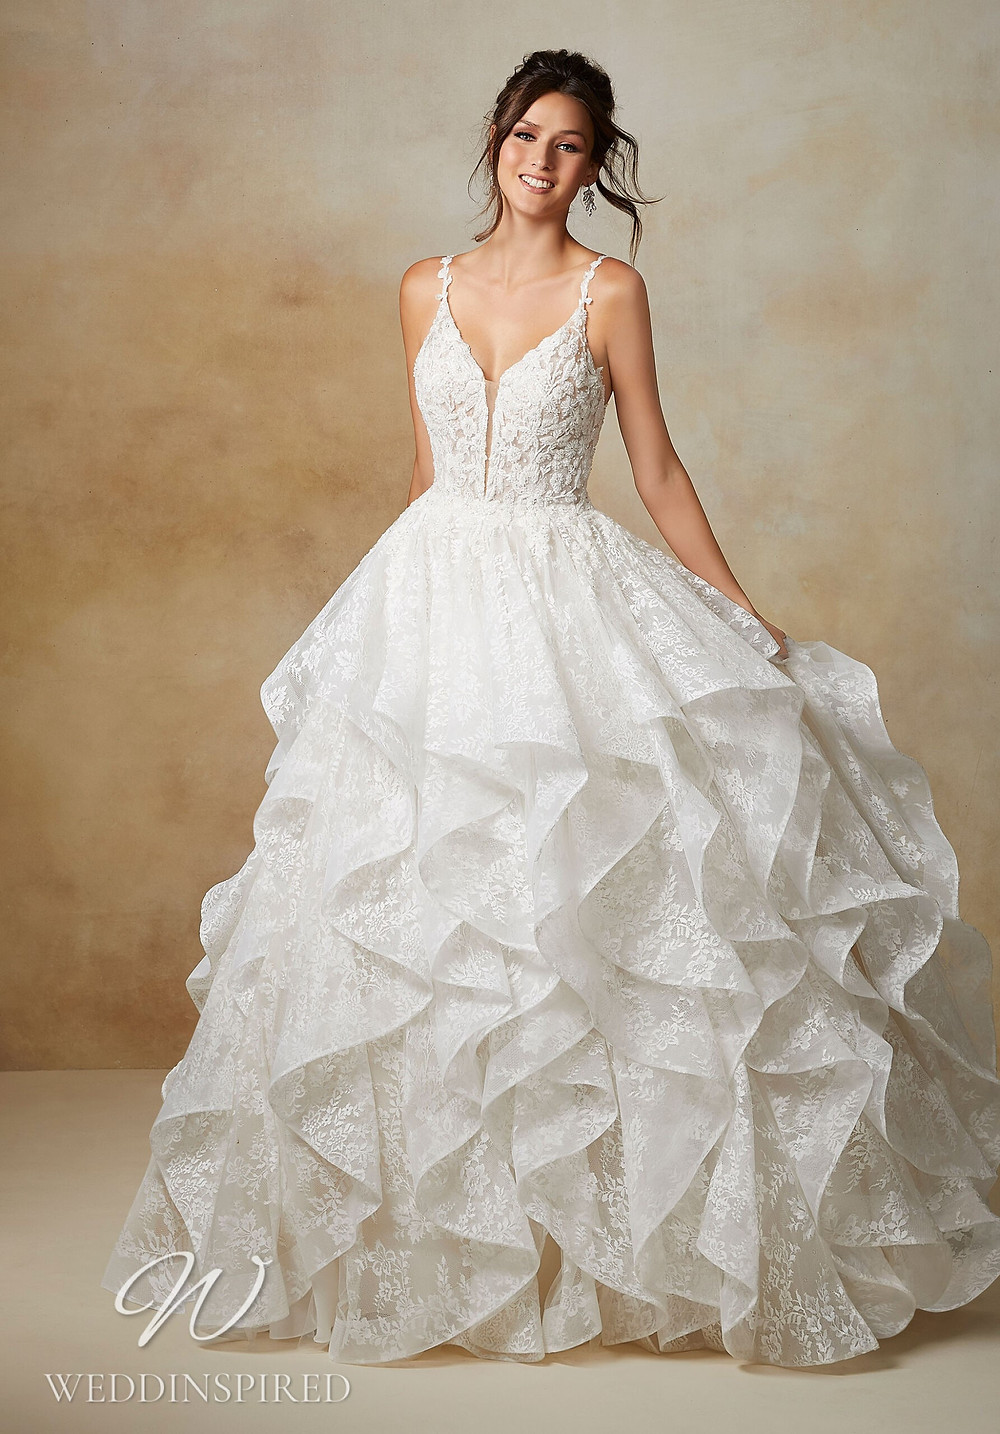 A Madeline Gardner lace princess ball gown wedding dress with a ruffle skirt and straps